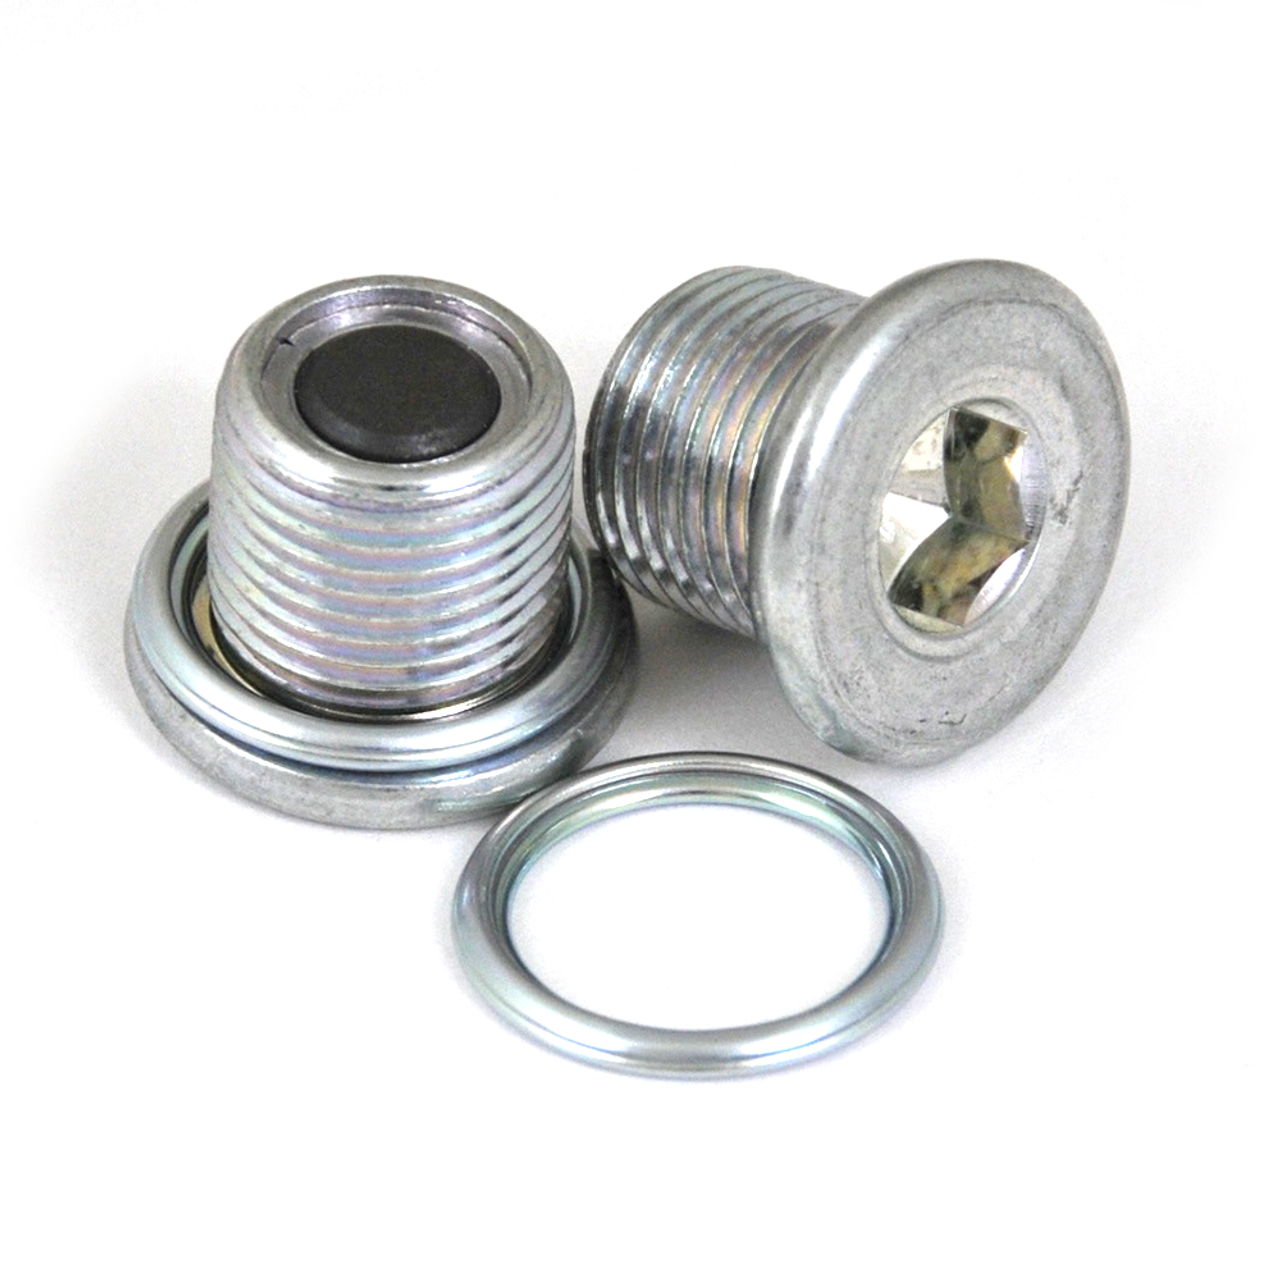 Toyota Magnetic Differential Plug Kit (DPK-1)